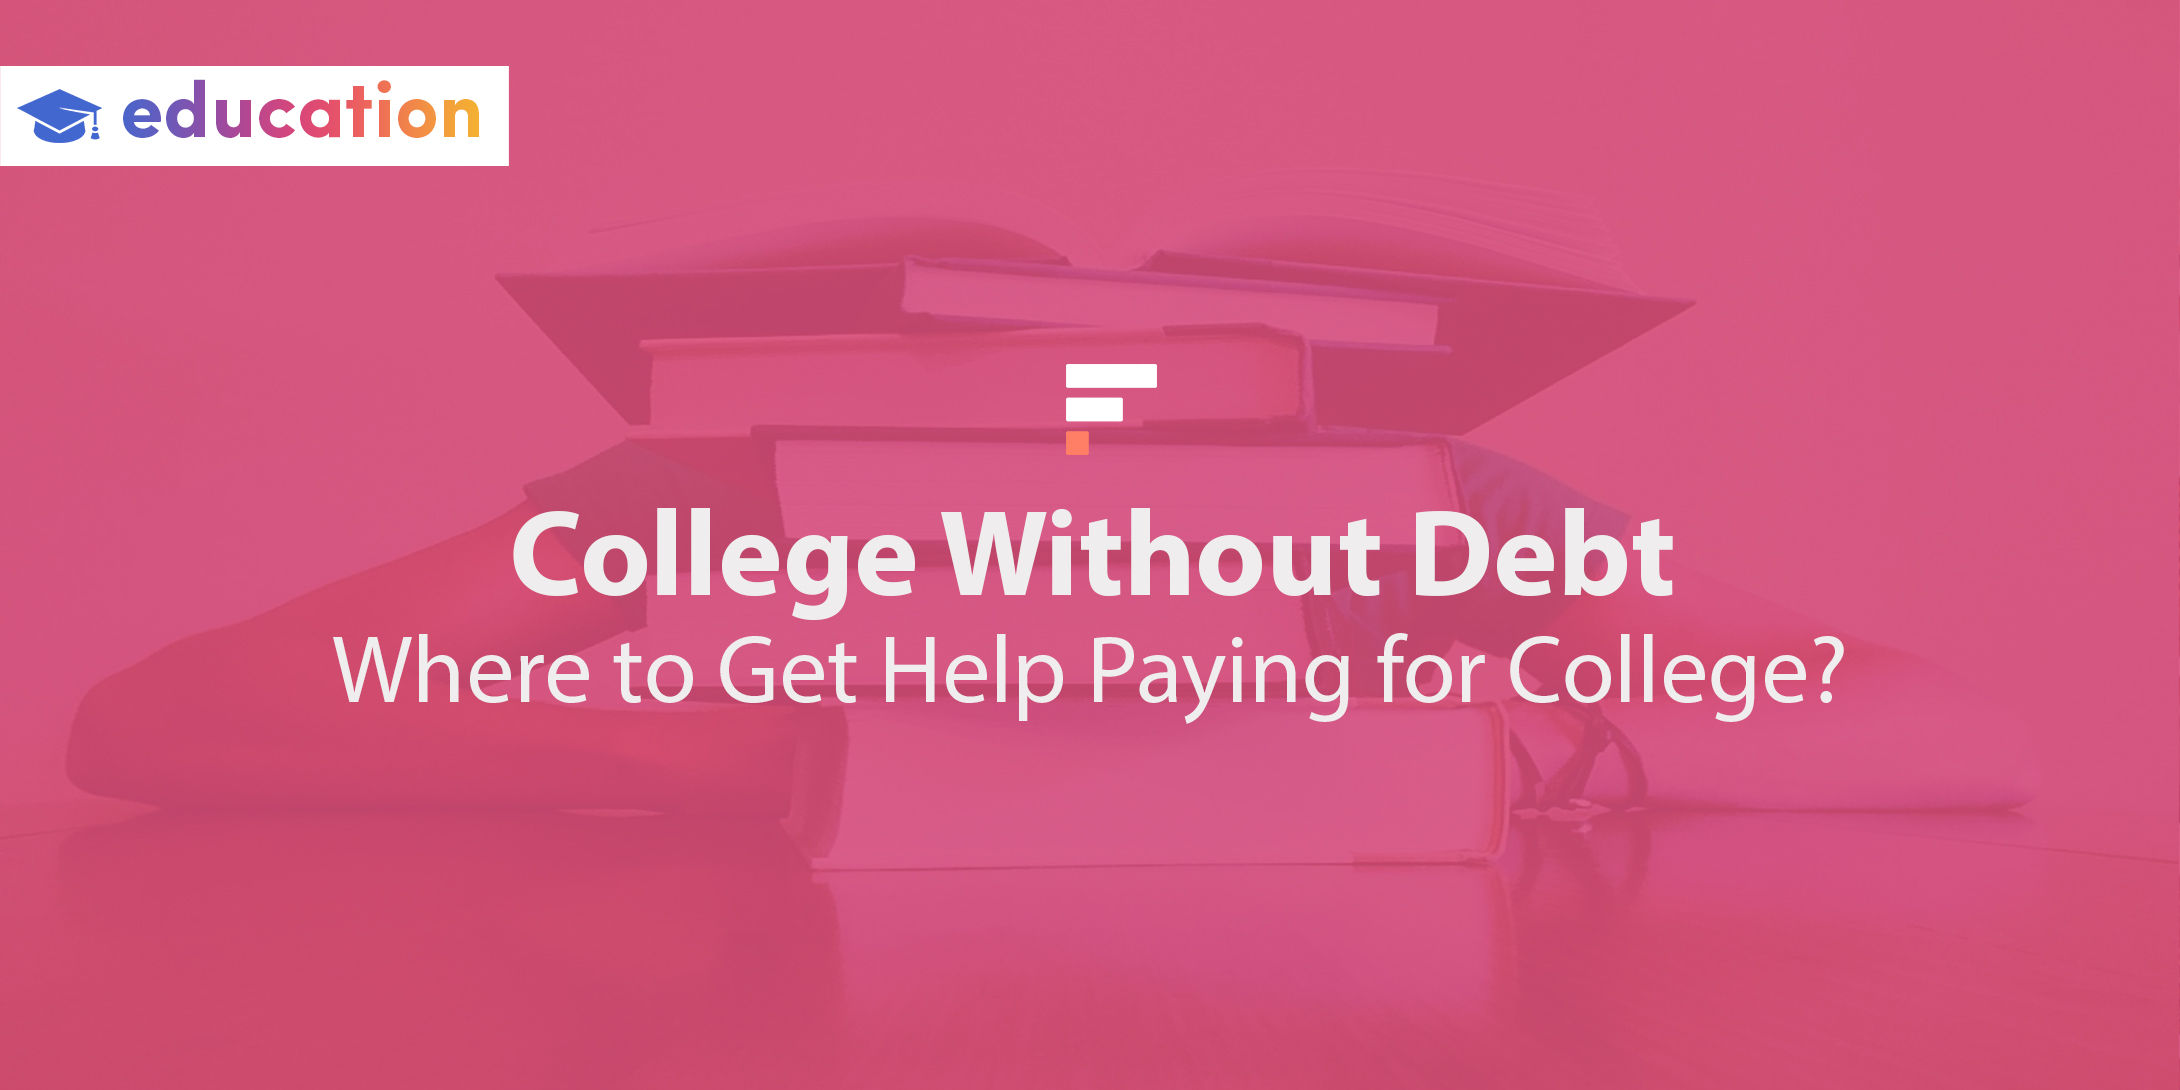 College Without Debt: Where to Get Help Paying for College?